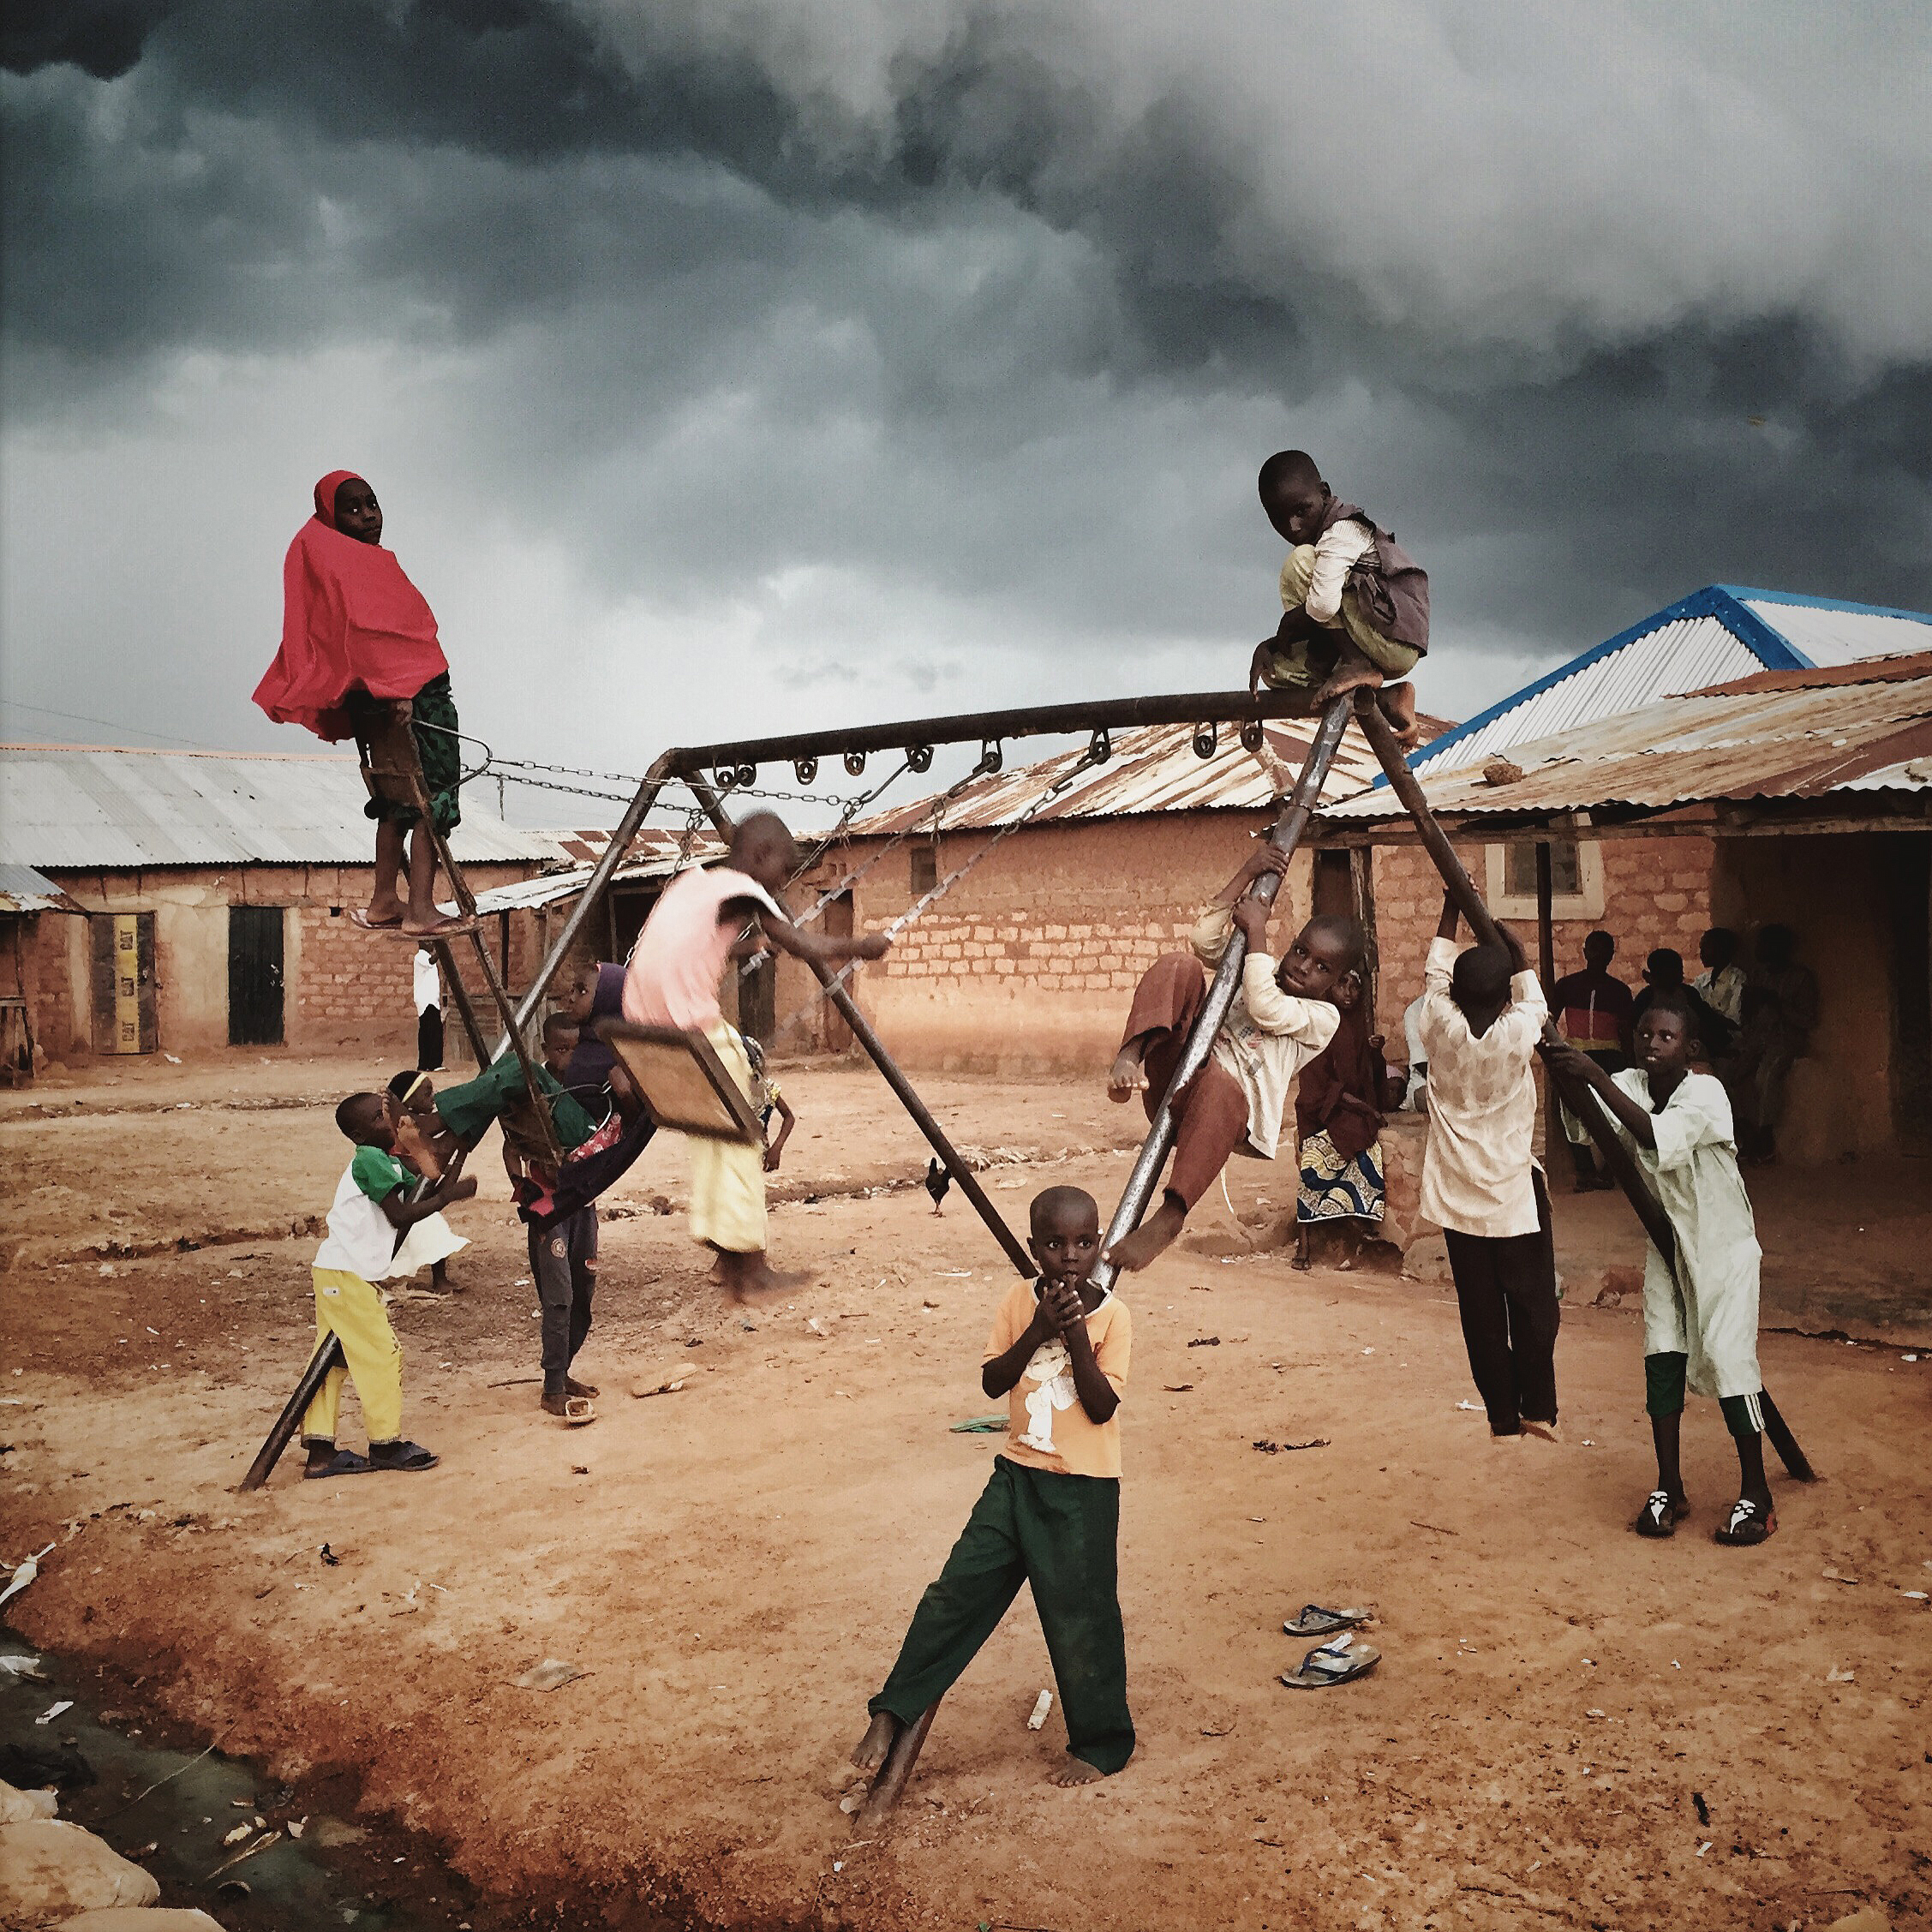 Children playing in a village near Zaria, Nigeria. @malinfezehai